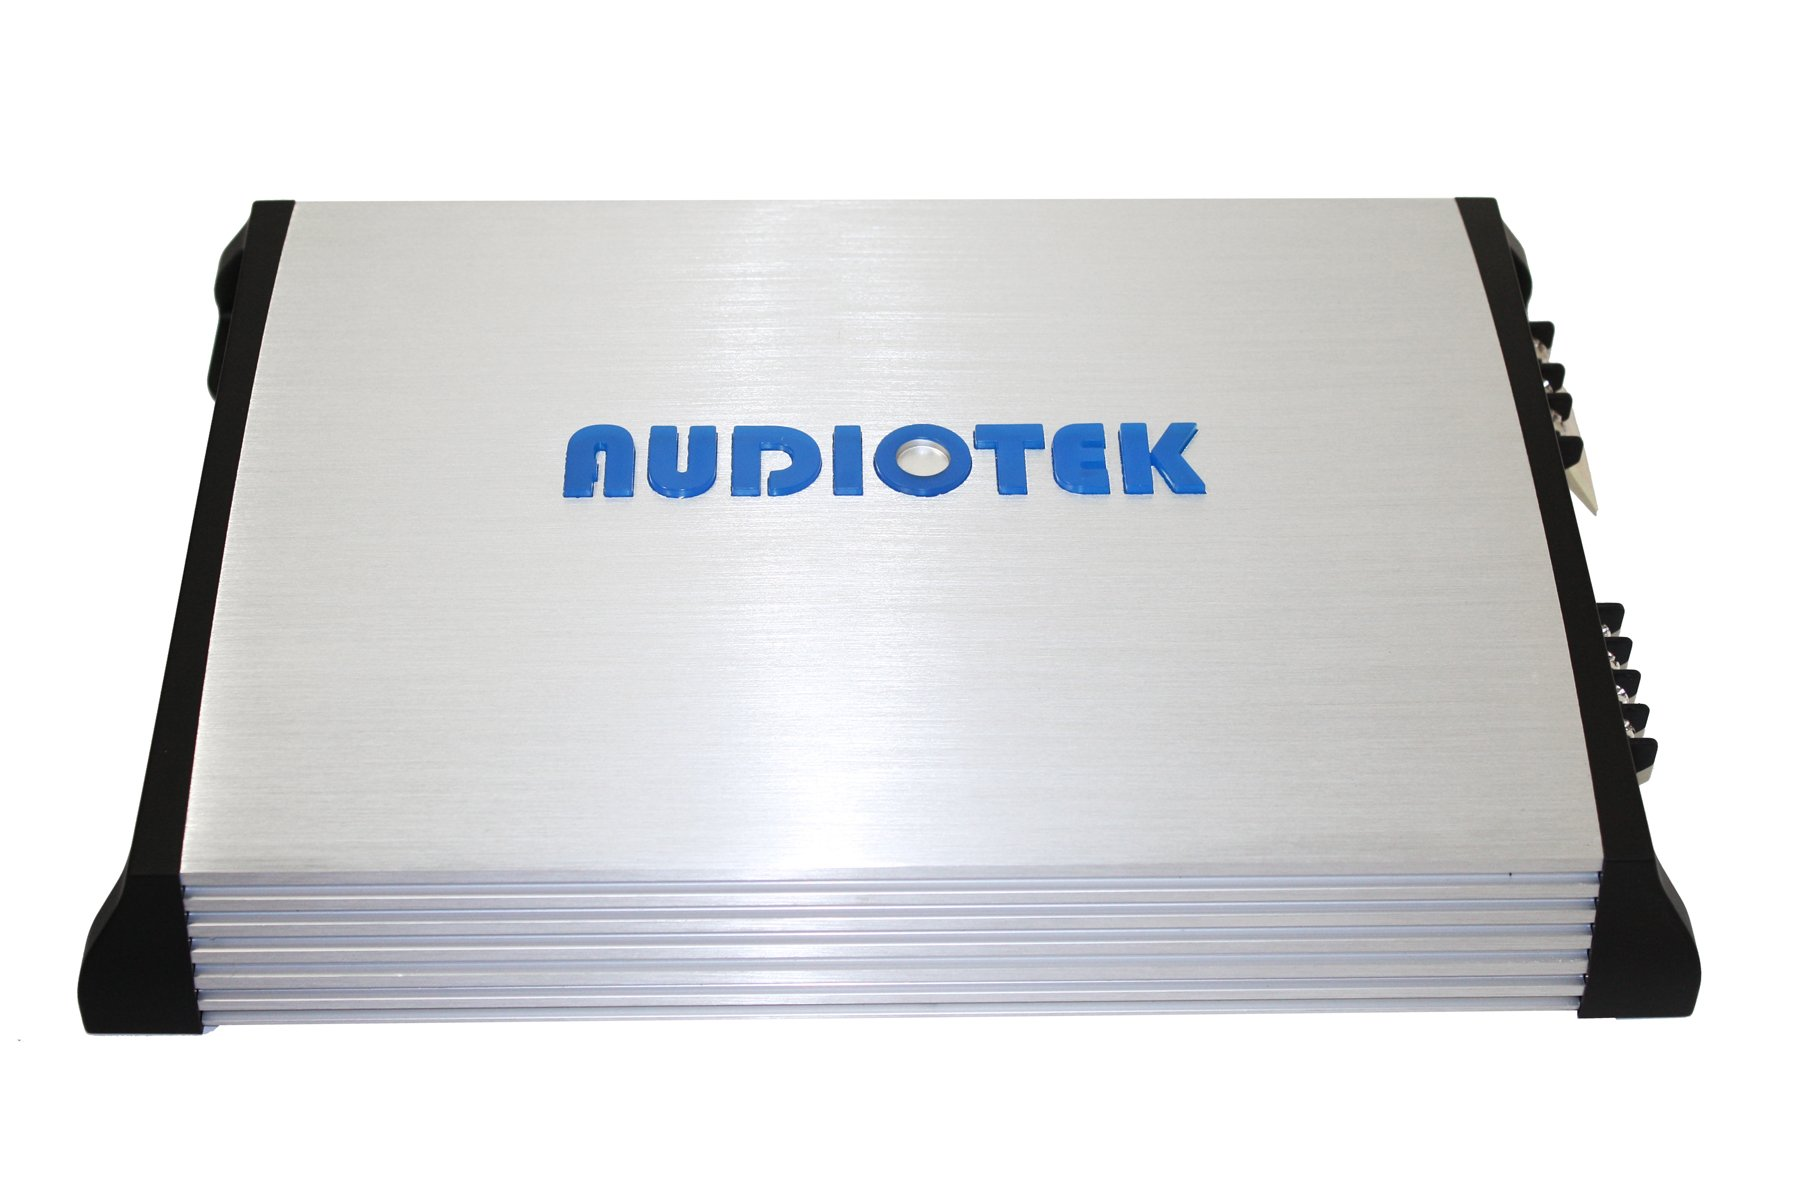 Audiotek At840S 2 Channels Class Ab 2 Ohm Stable 2400W Stereo Power Car Amplifier W/ Bass Control